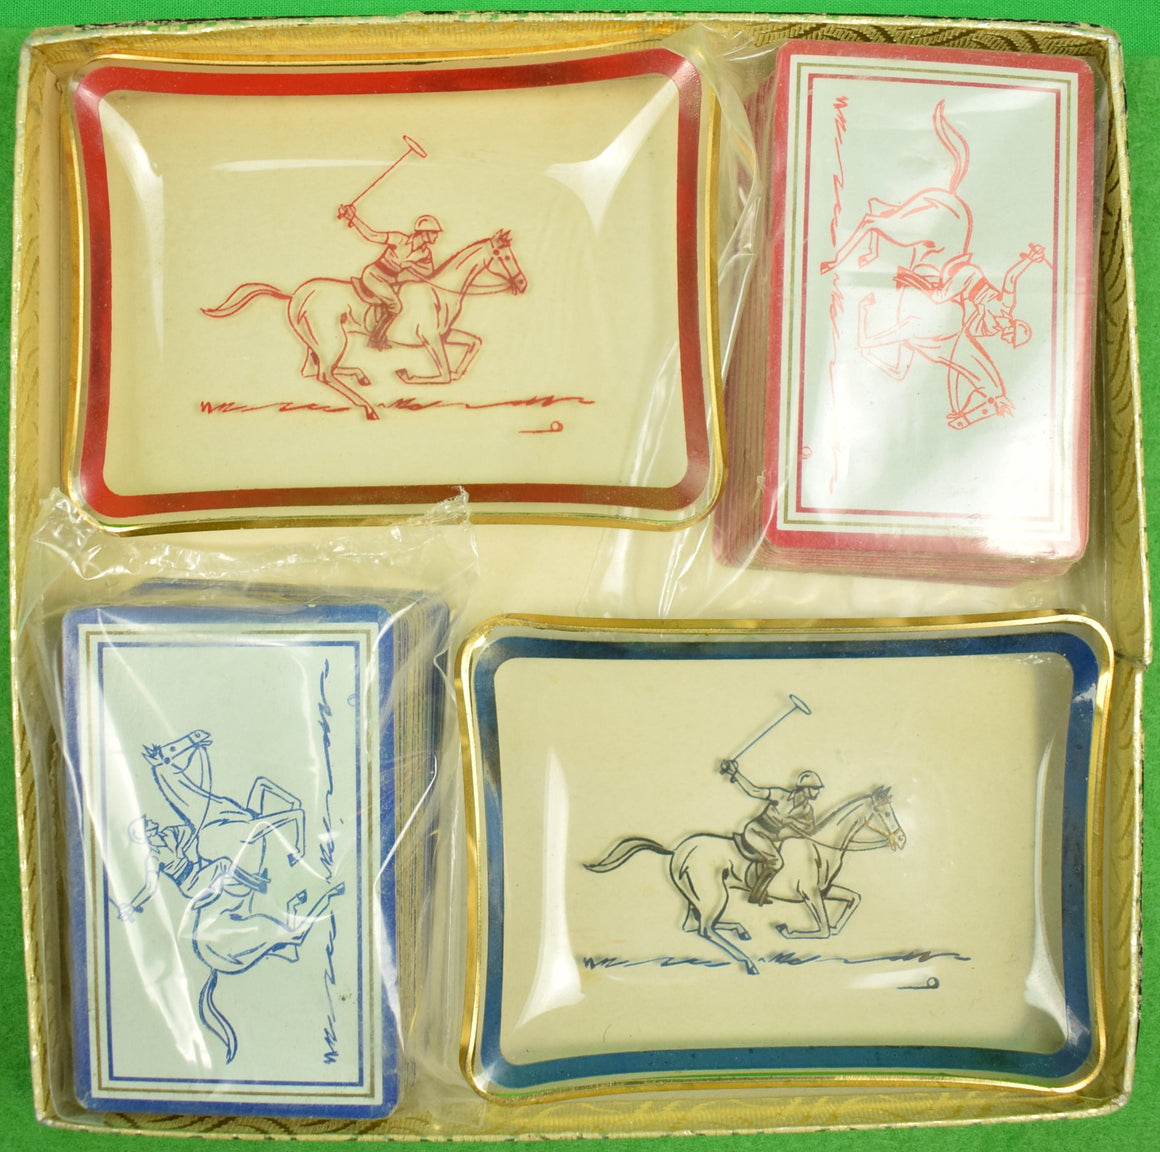 Box Set of 2 Glass Polo Player Ash Trays & Set of 2 Decks of Playing Cards